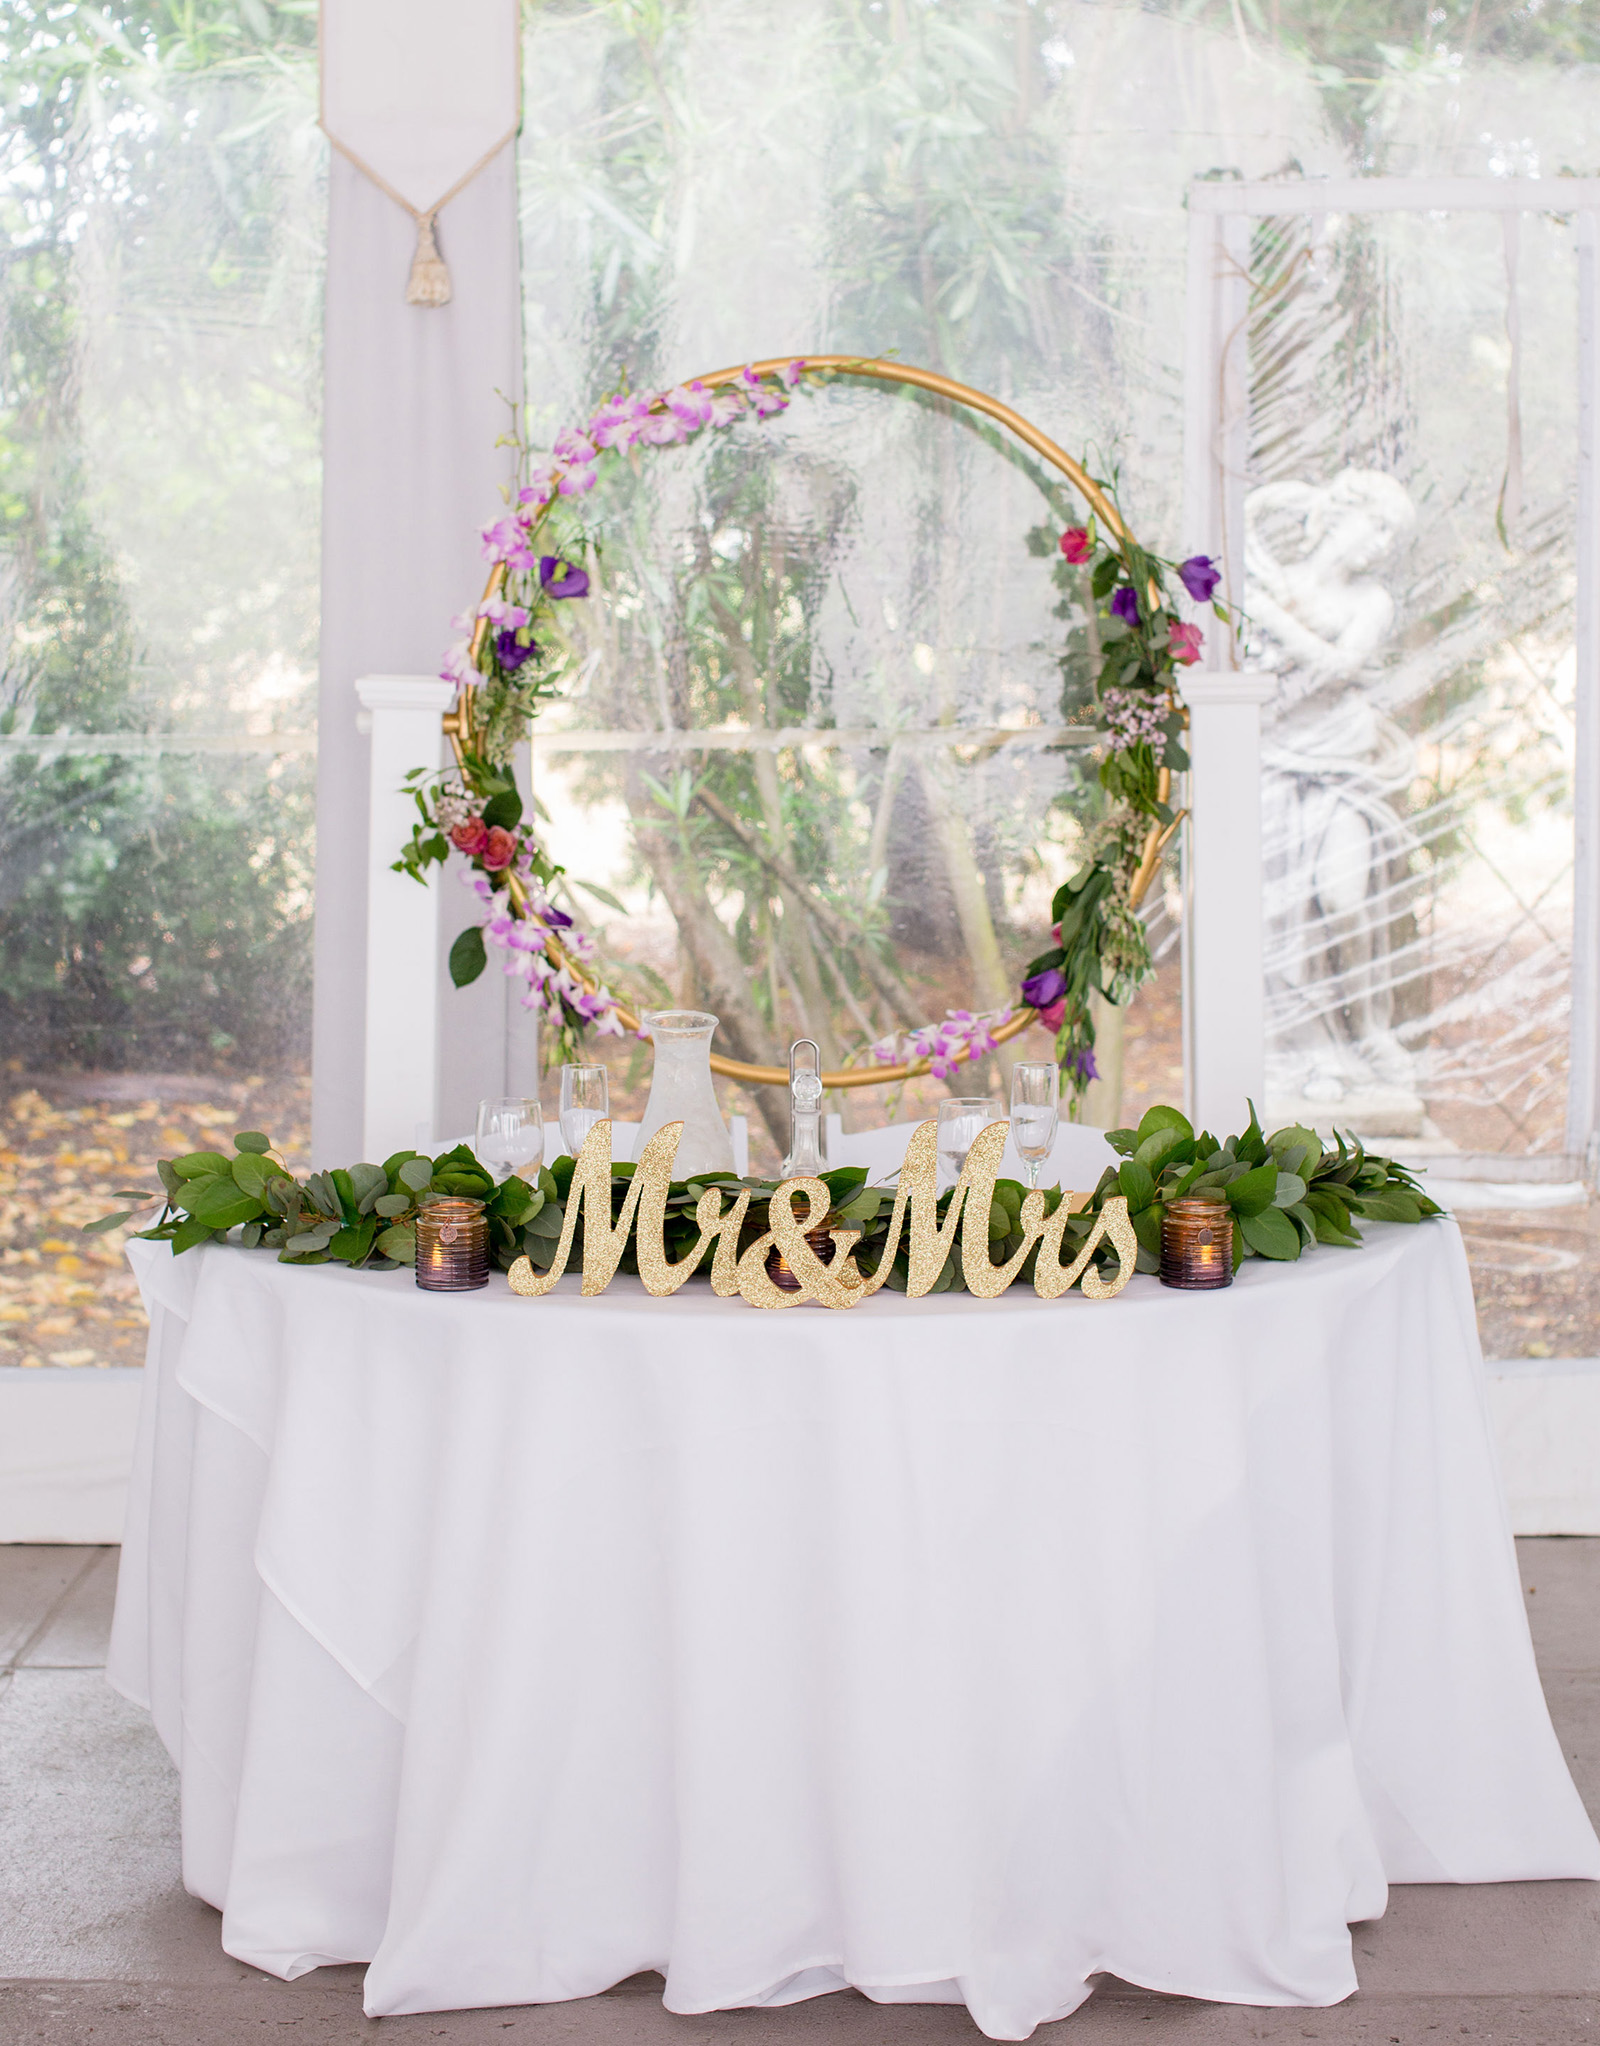 Decorative sweetheart table - Jefferson Street Mansion - Benicia, California - Solano County - Wedgewood Weddings